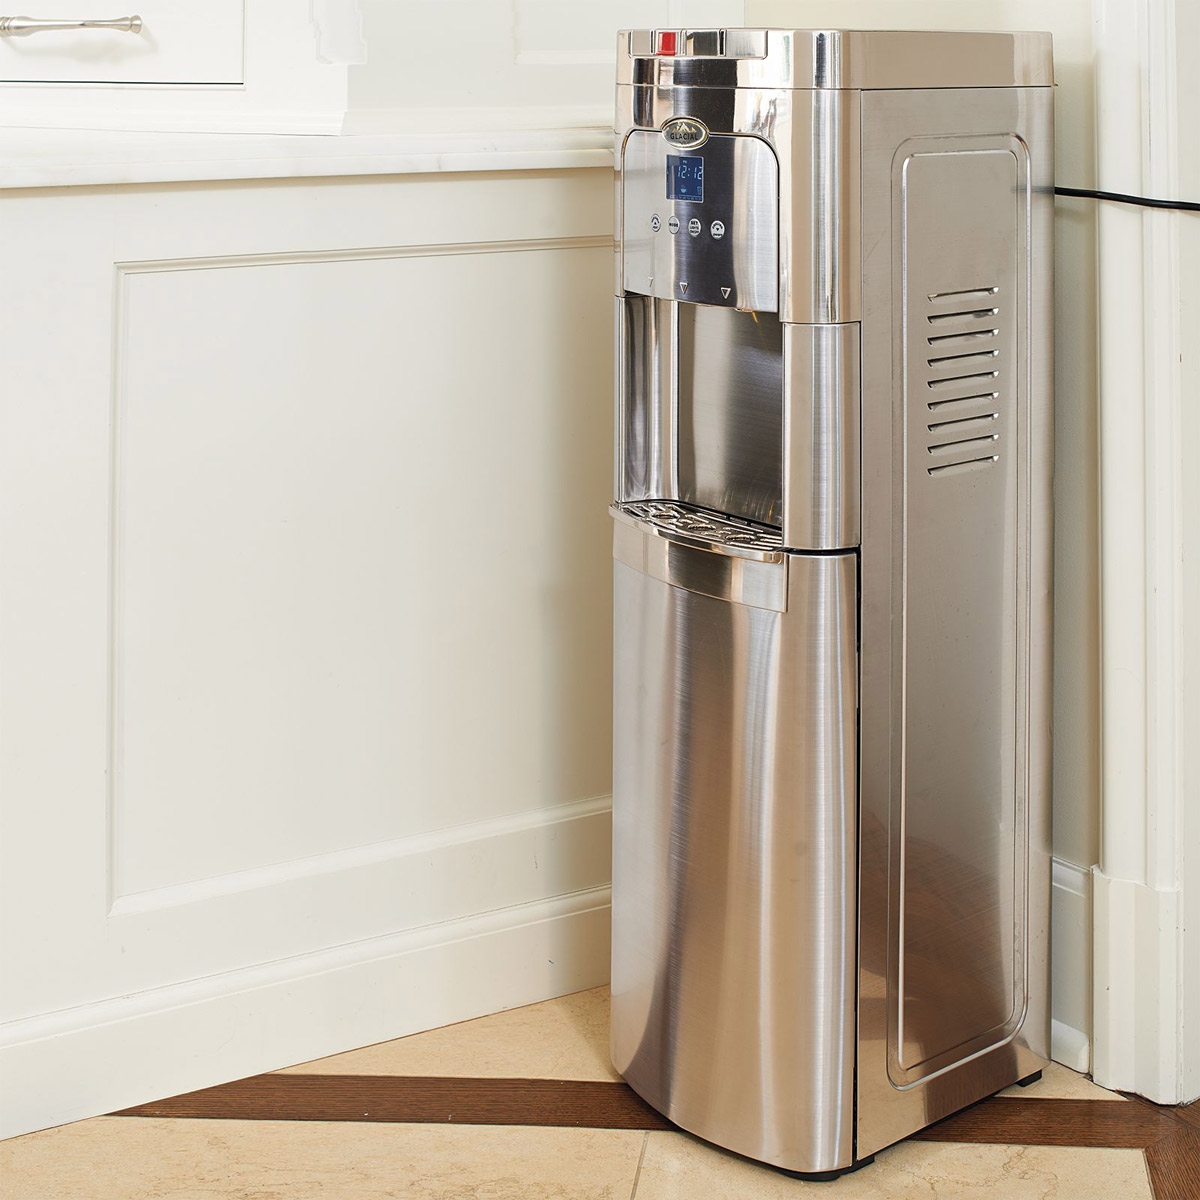 Glacial Maximum - Stainless Steel, Self-Cleaning, Bottom-Load Watercooler - The Green Head